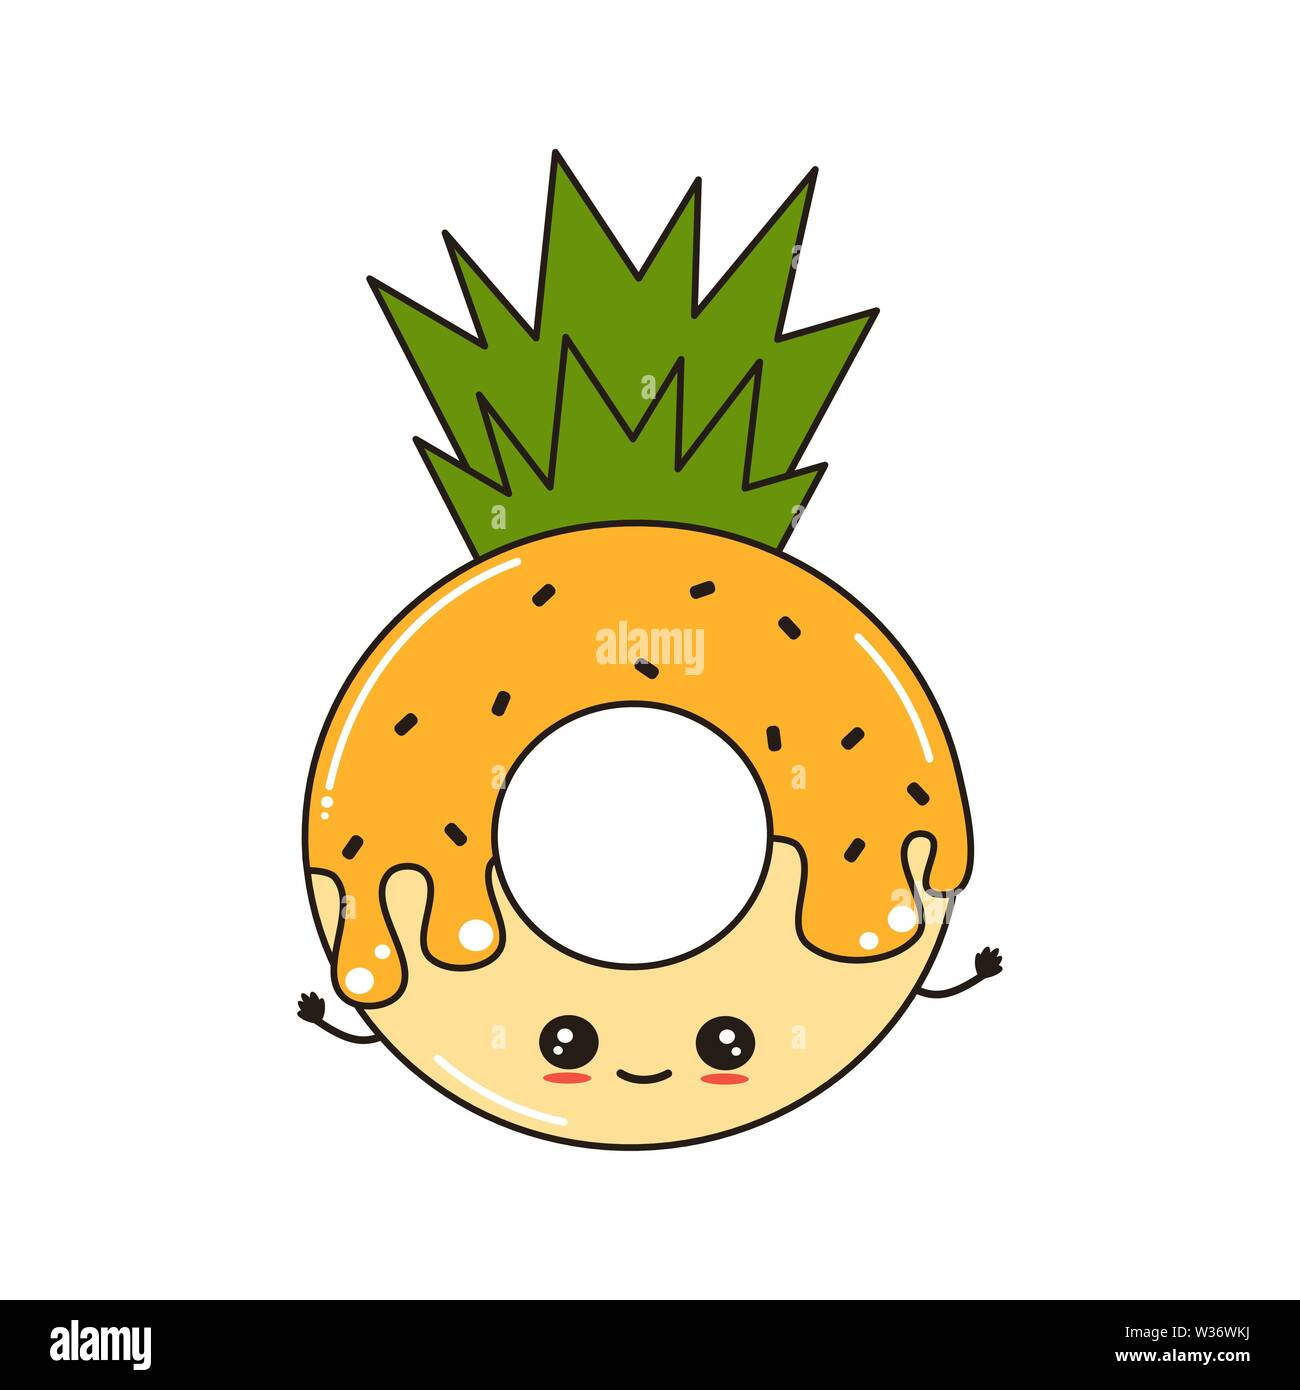 cute cartoon vector character donut pineapple funny illustration isolated on white background W36WKJ